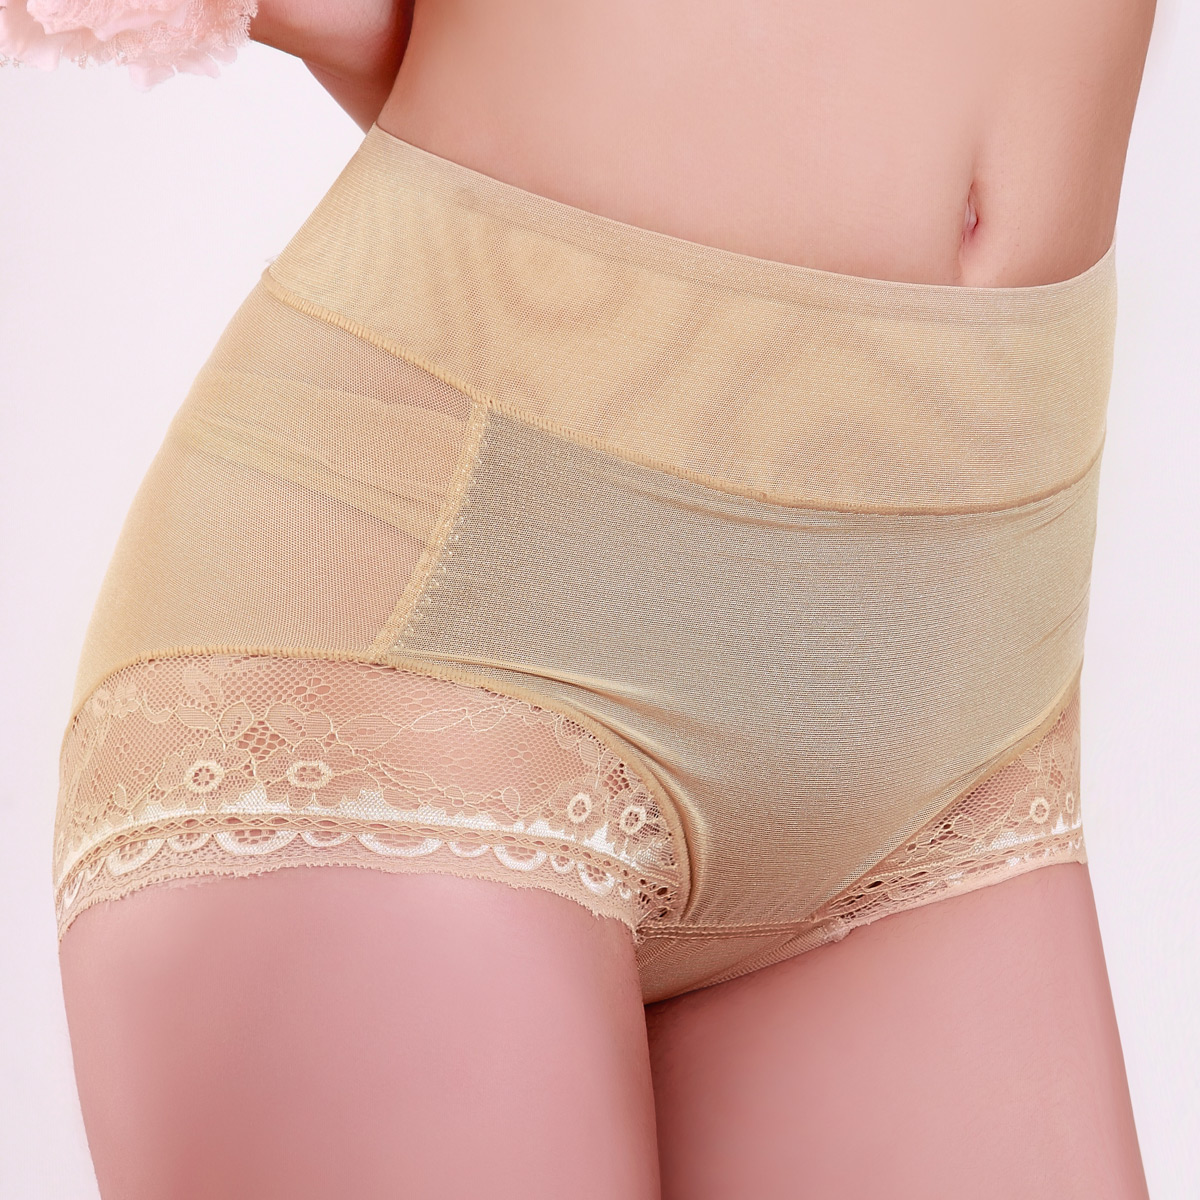 Magnetic therapy care thin mid waist abdomen drawing butt-lifting body shaping pants panties sk146